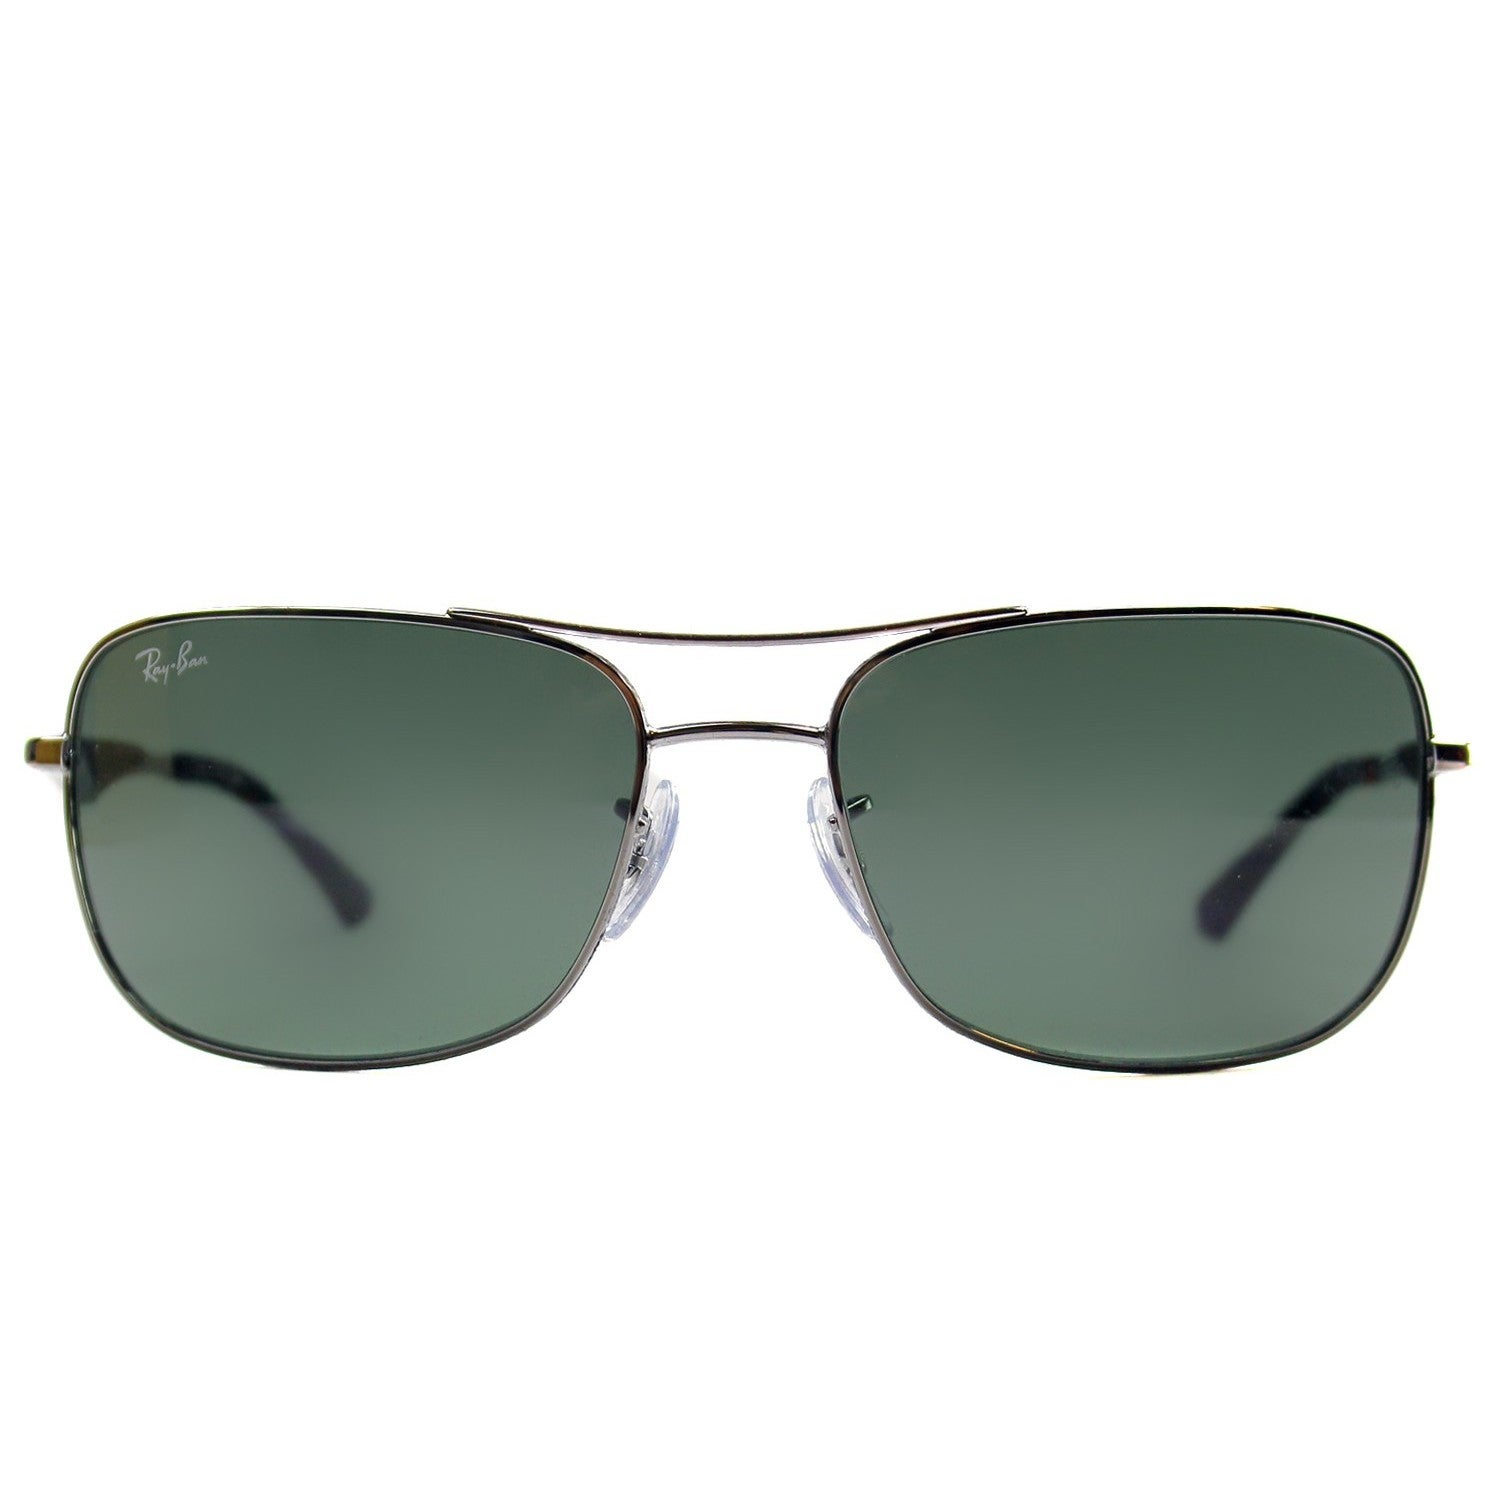 6daf111becf Shop Ray-Ban RB3515 004 71 Men s Gunmetal Frame Green Classic 58mm Lens  Sunglasses - Free Shipping Today - Overstock - 11118536